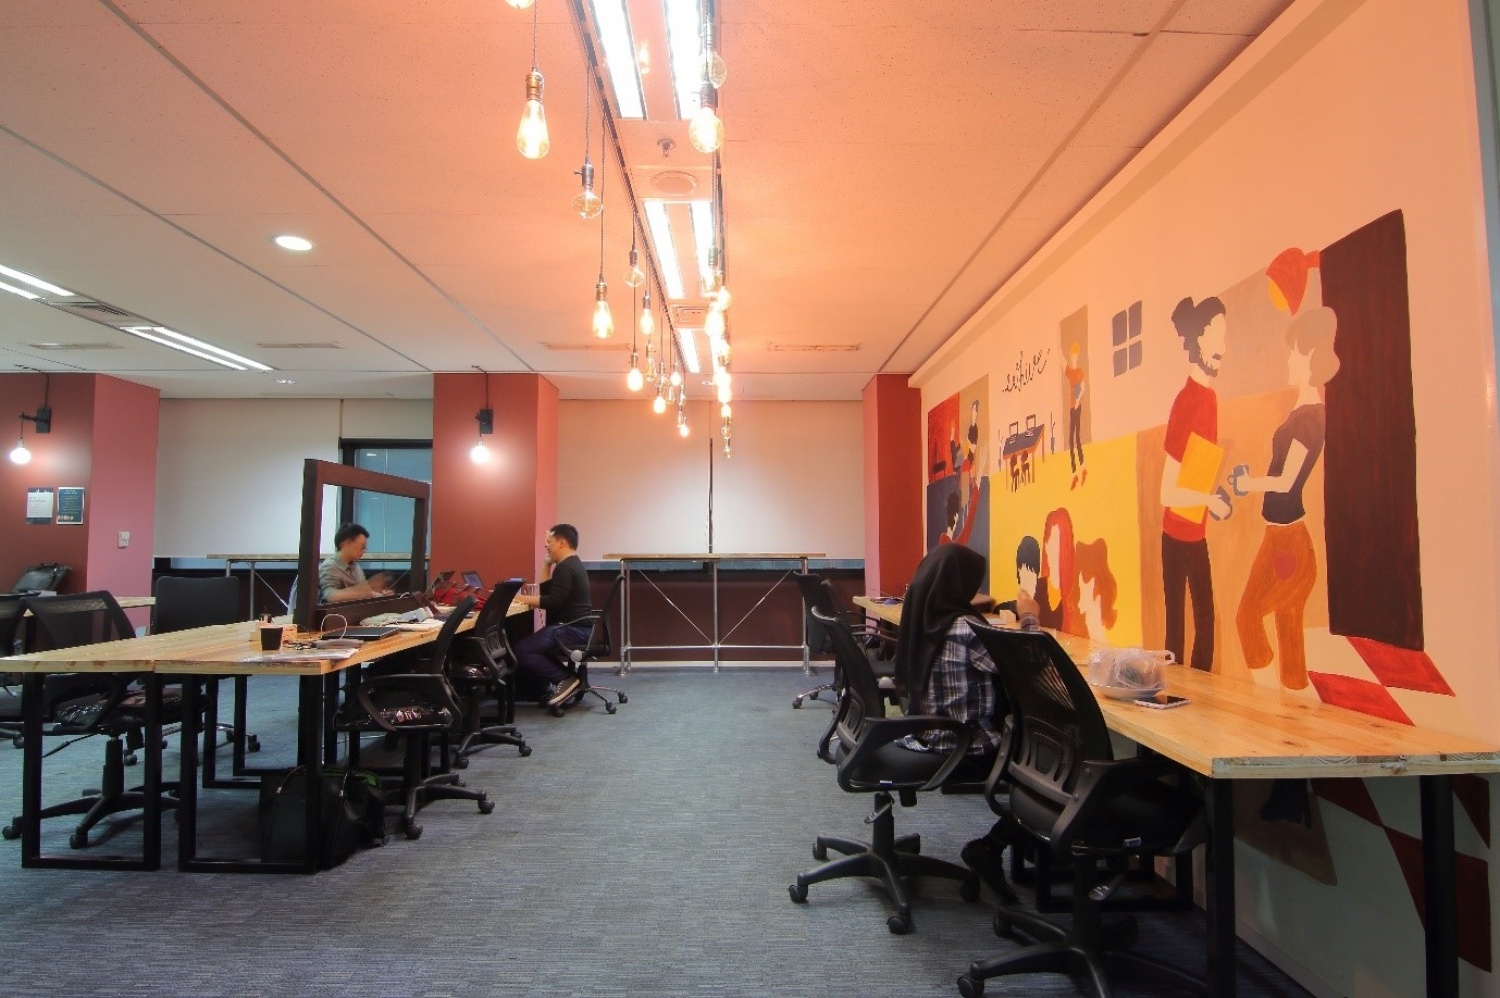 COCOWORK coworking